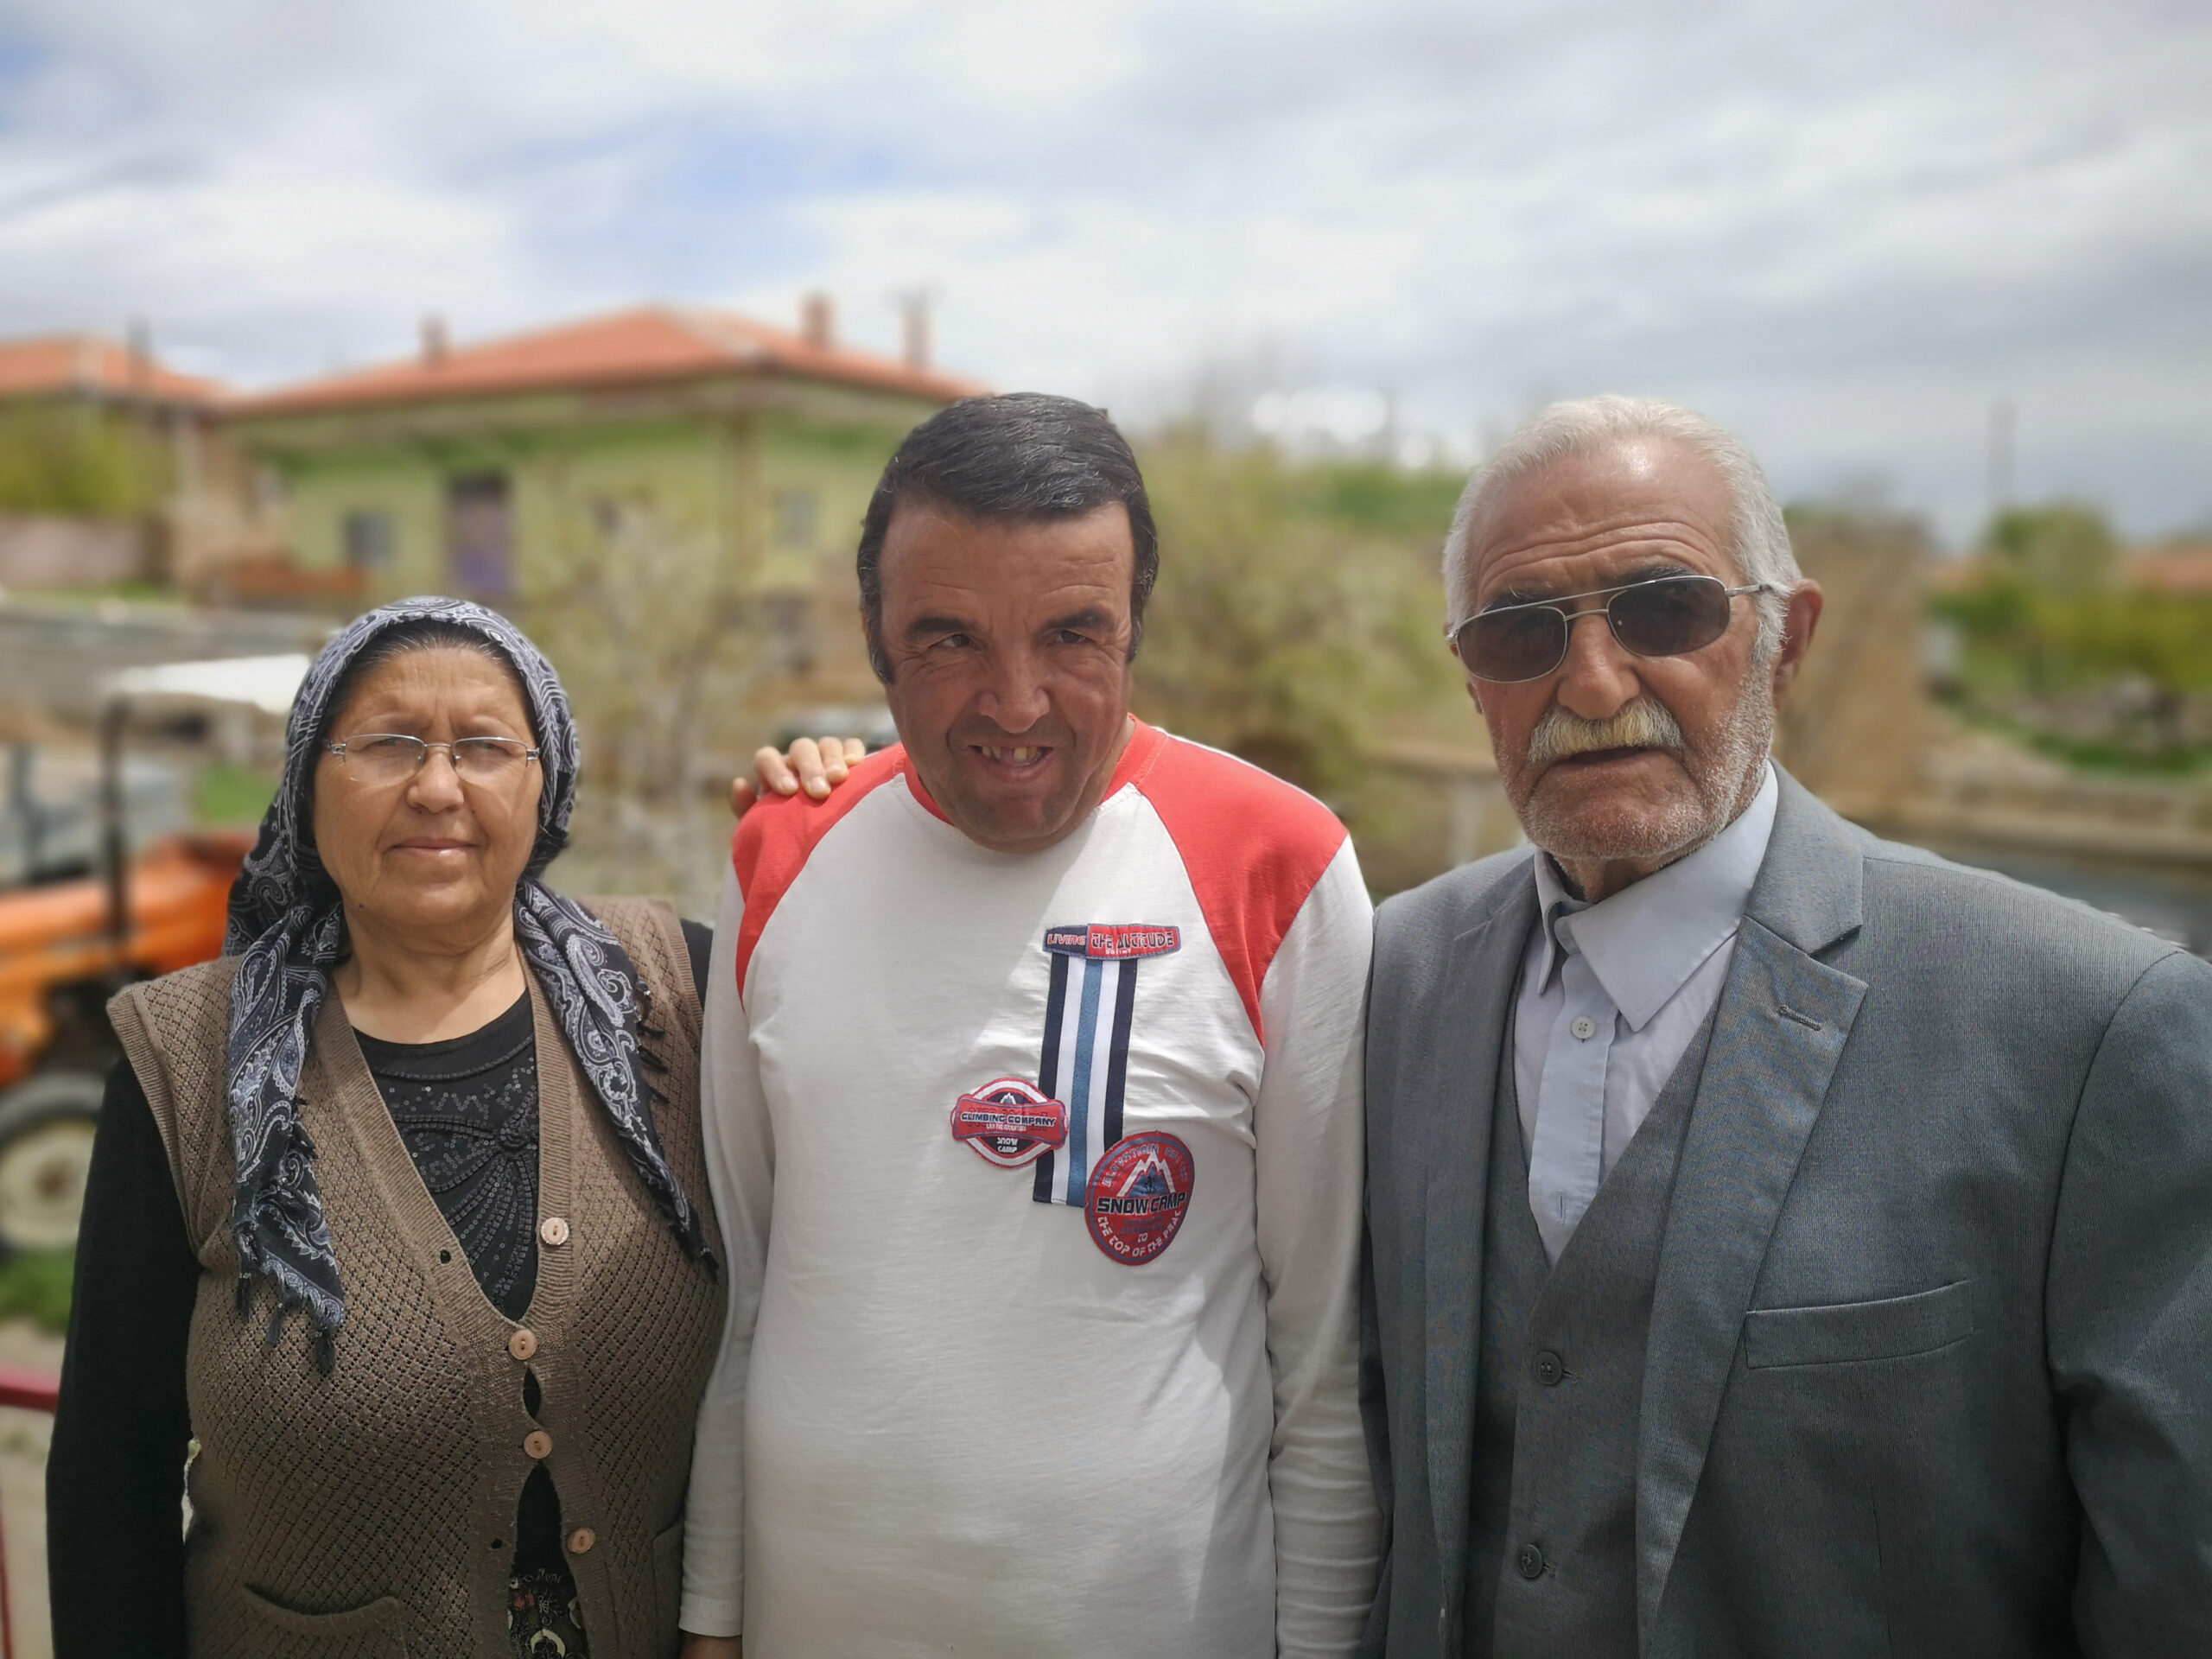 My hosts, Adile (left), Erkan (centre) and Ali (right) on their farm in Cumhuriyet, Anatolia.